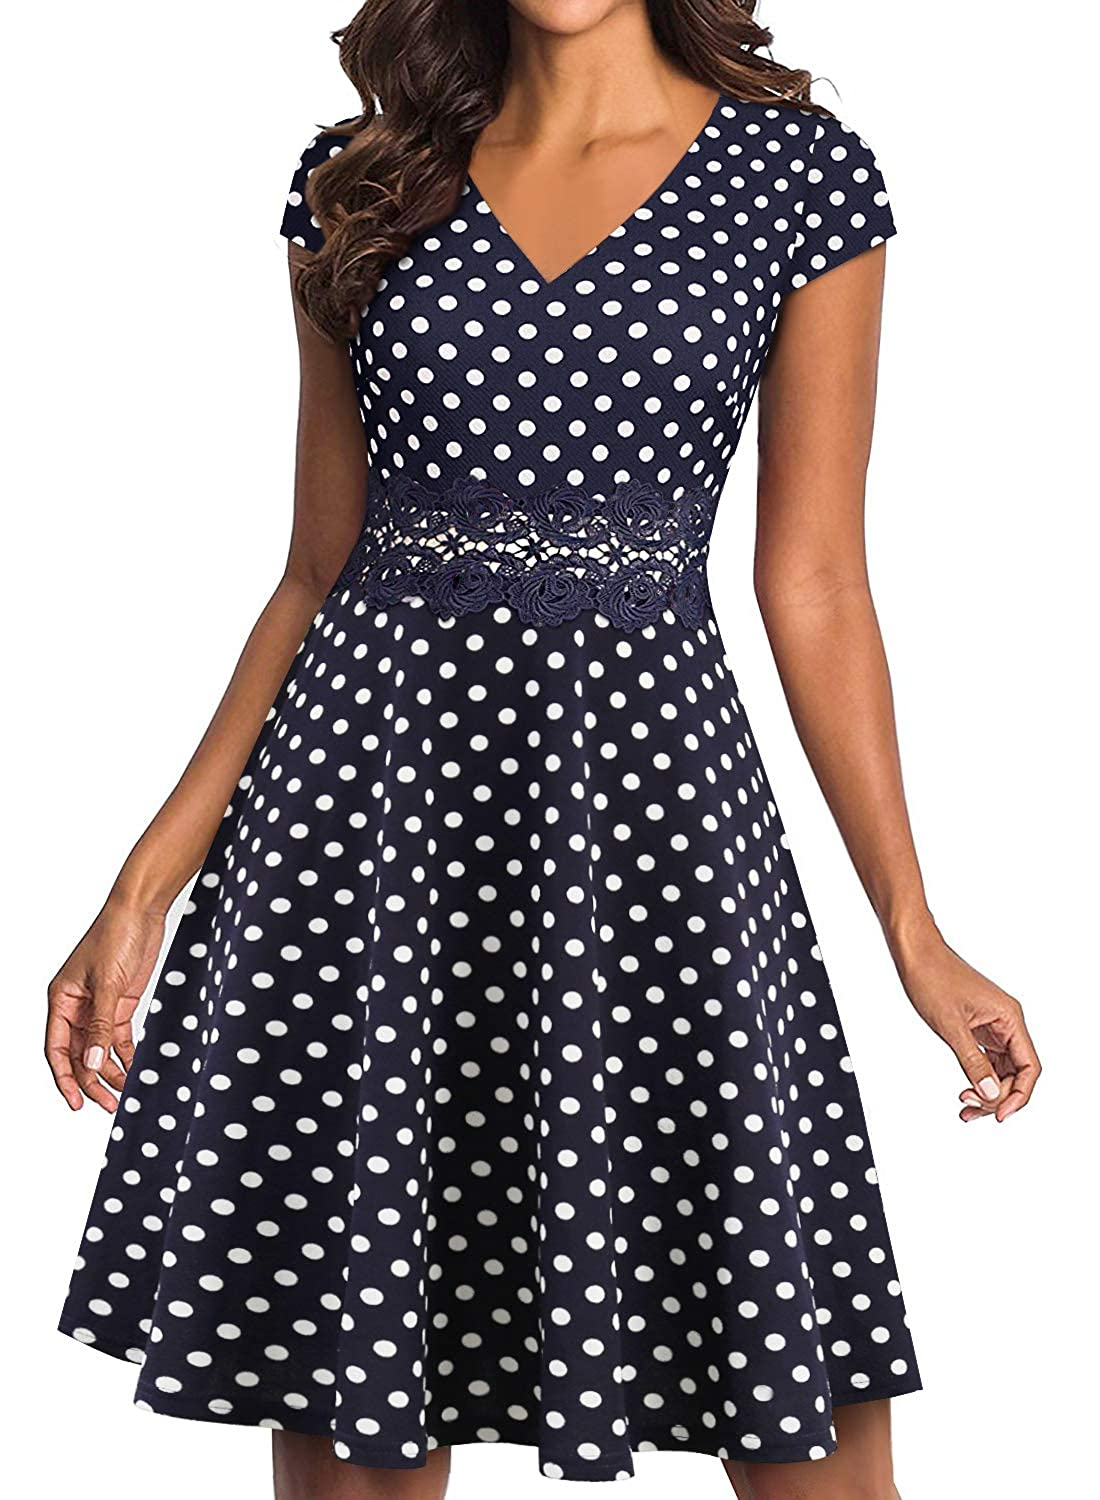 1ccdcaf7fdbc YATHON Women's Elegant Floral Lace Embroidery Flared A-Line Swing Casual Party  Cocktail Dresses at Amazon Women's Clothing store: